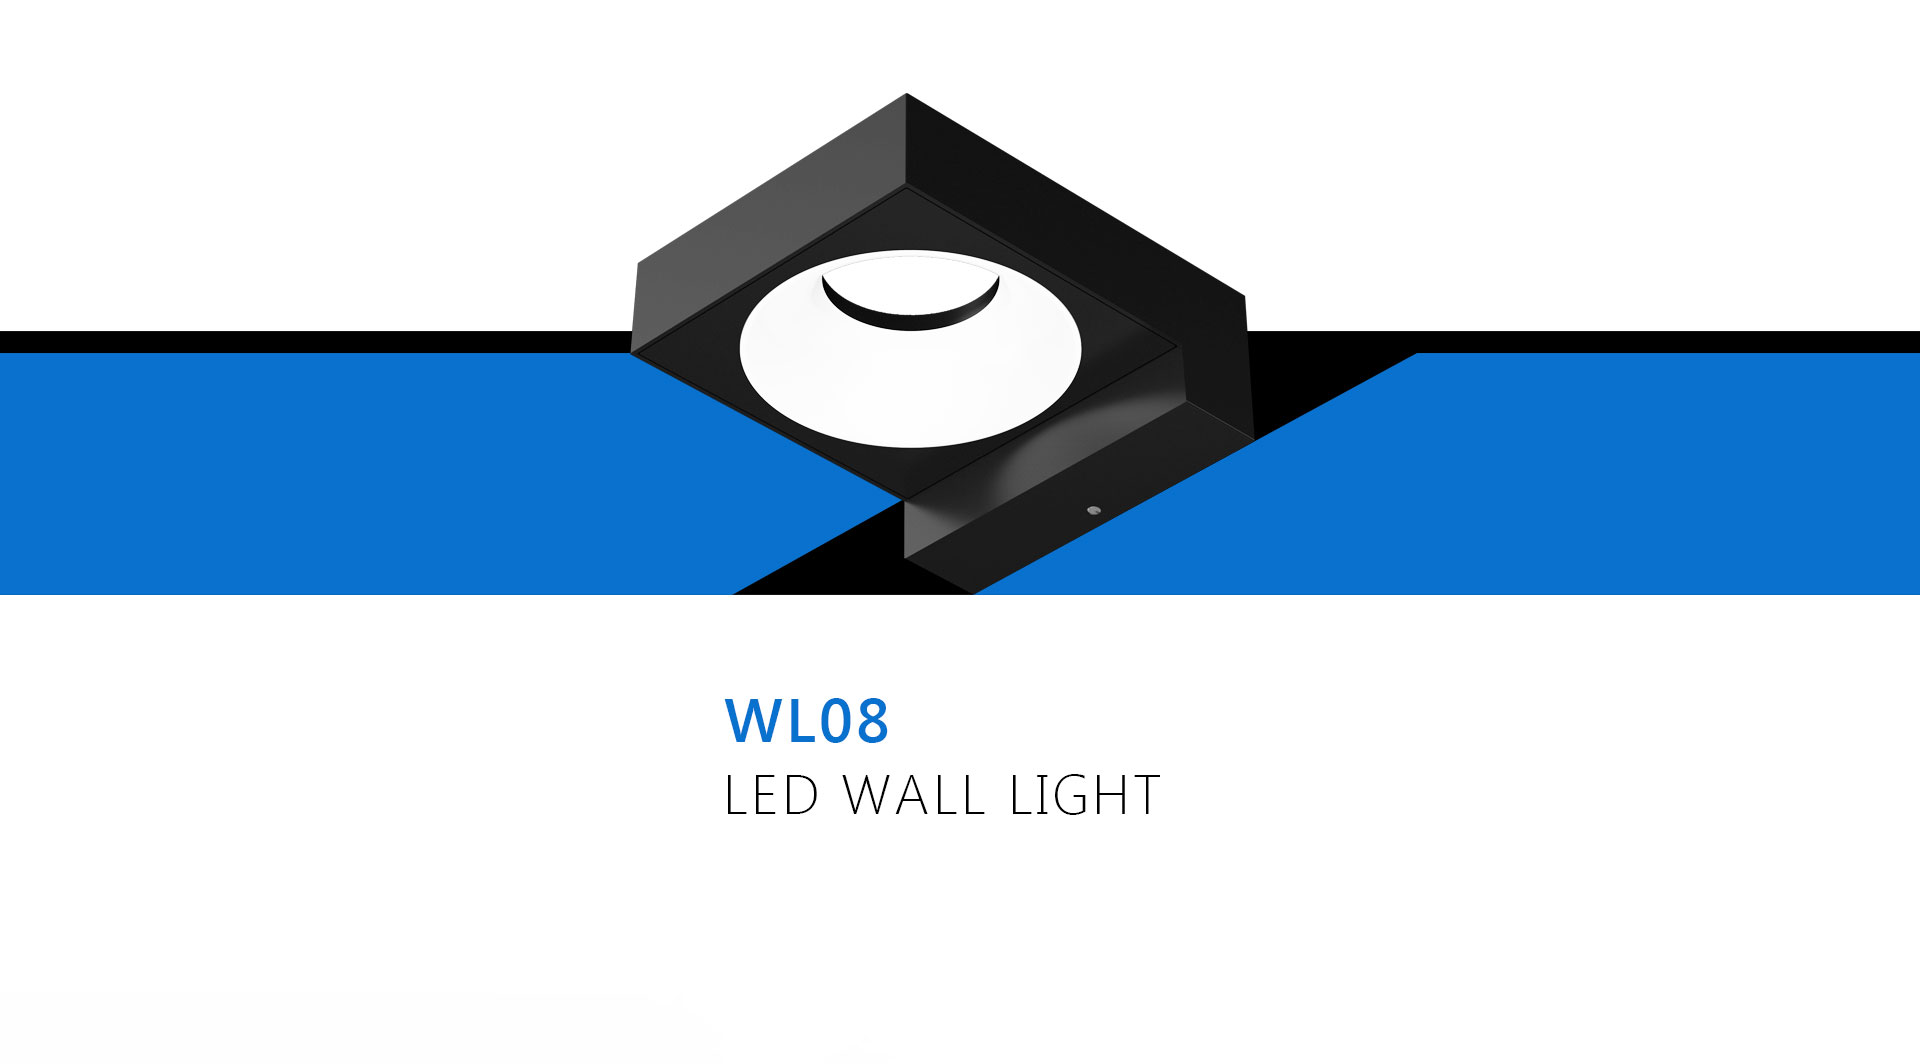 WL08 up down wall lights exterior_01